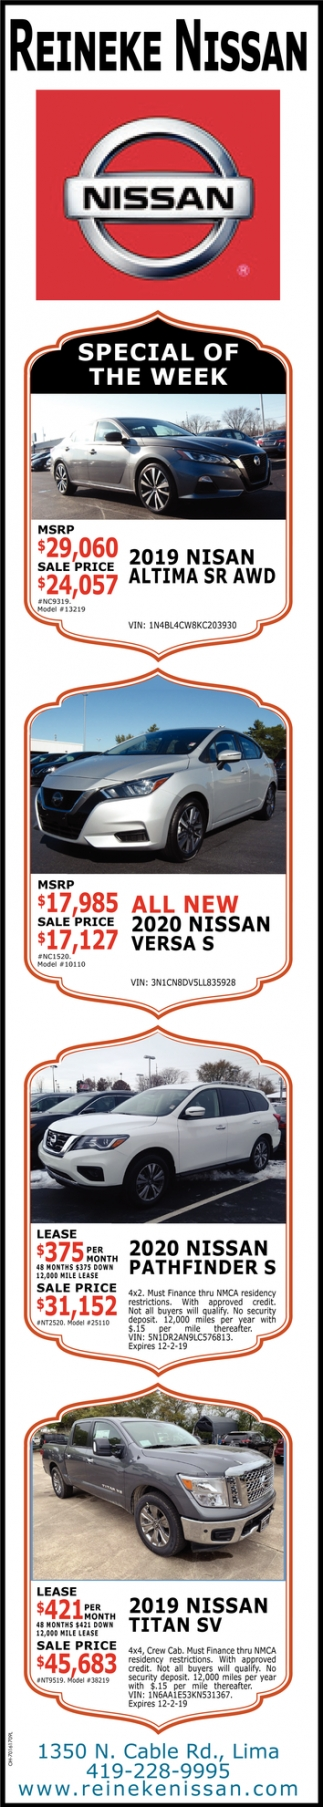 Special of the Week - 2019 Nissan Altima SR AWD